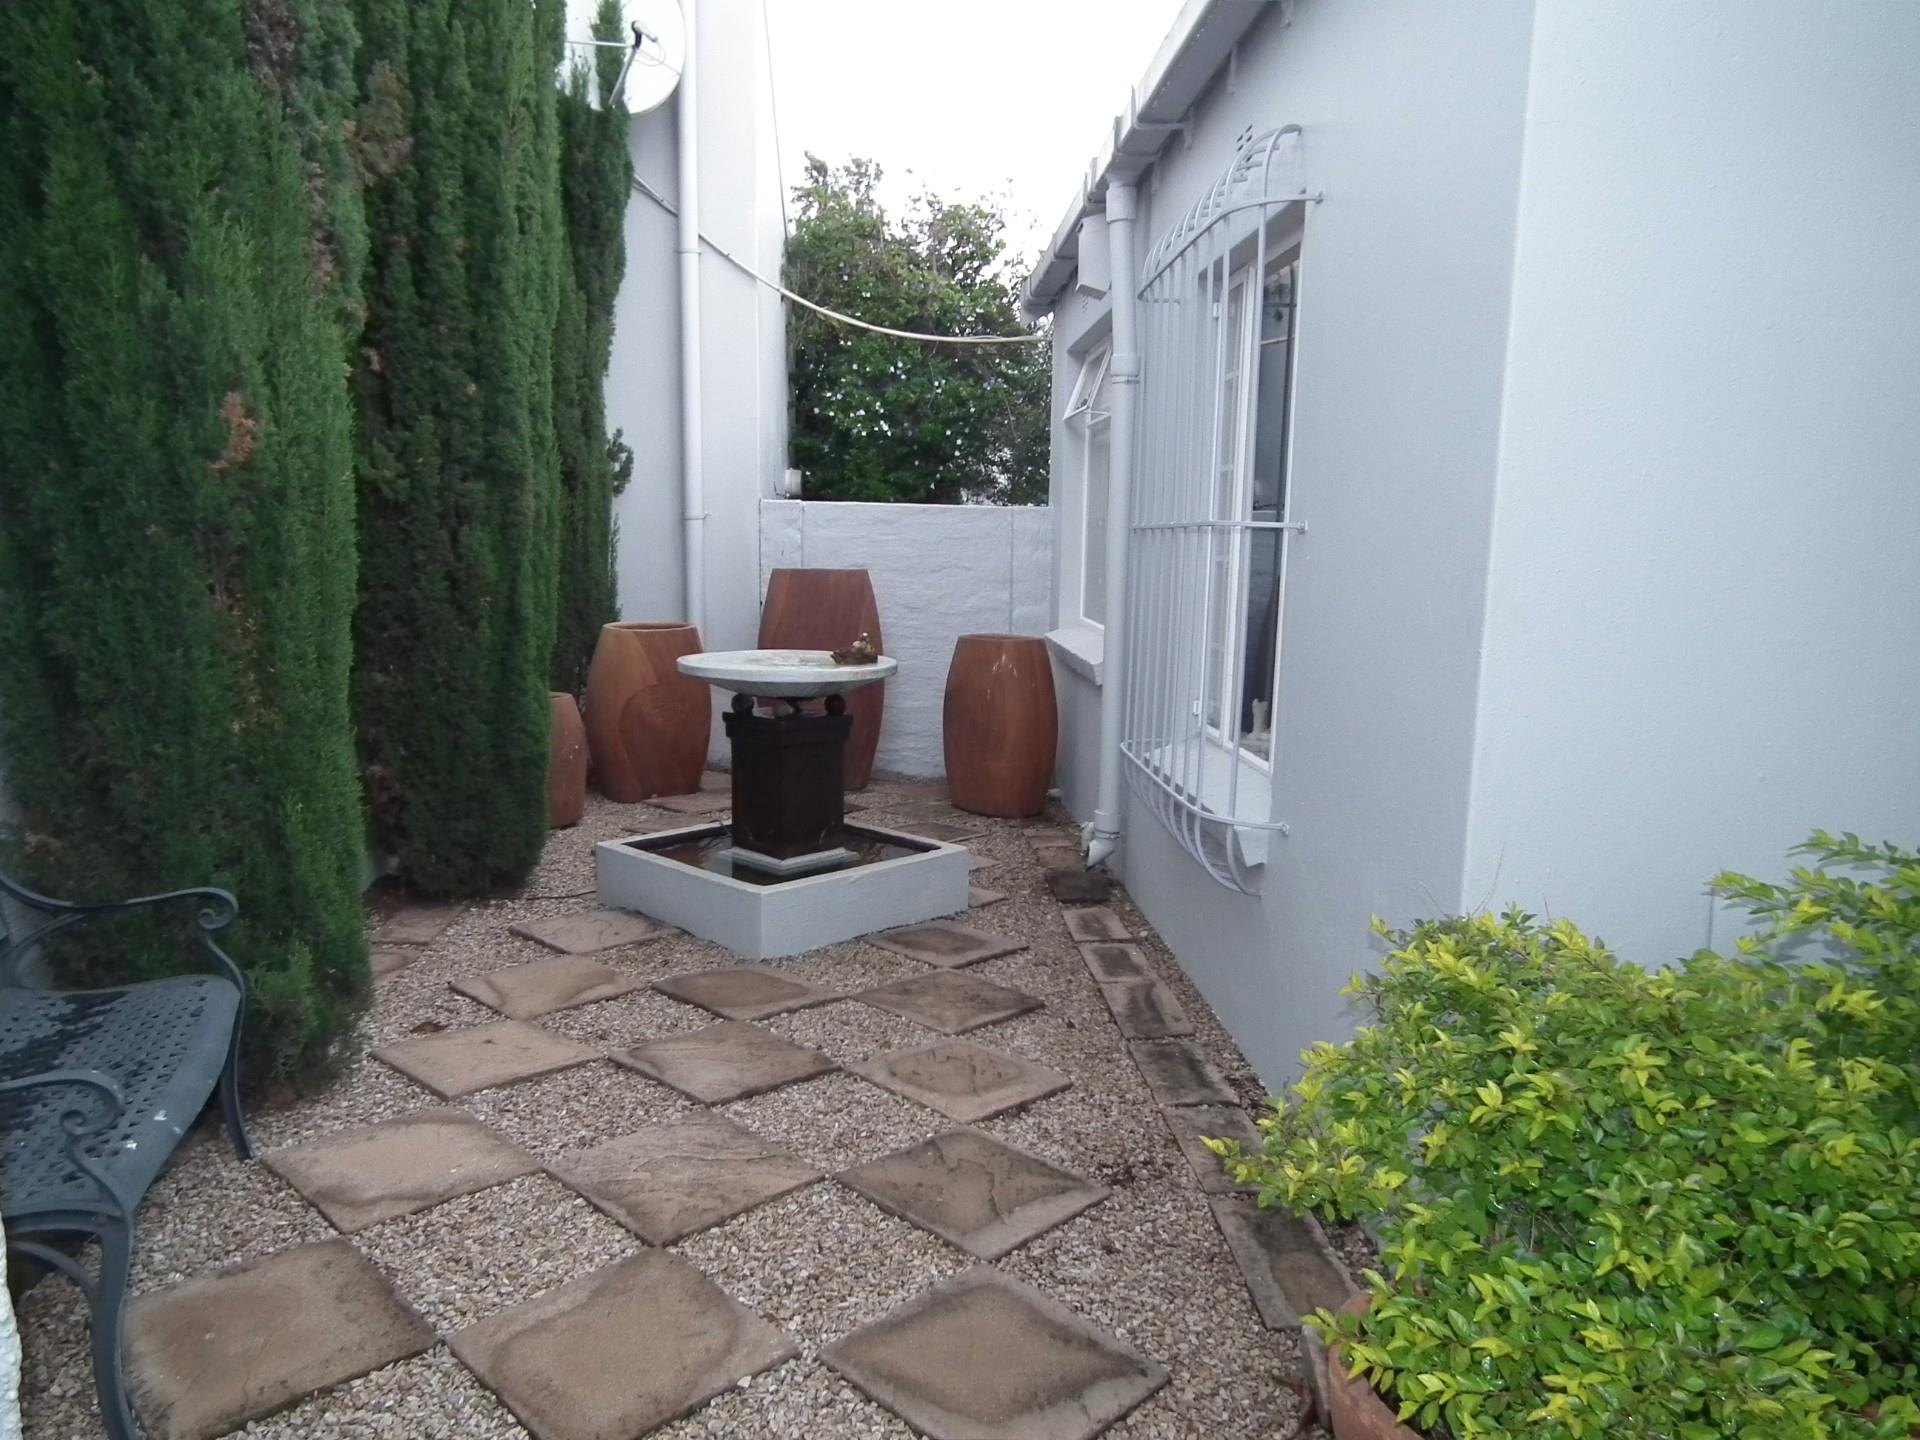 3 Bedroom Simplex For Sale in Lonehill